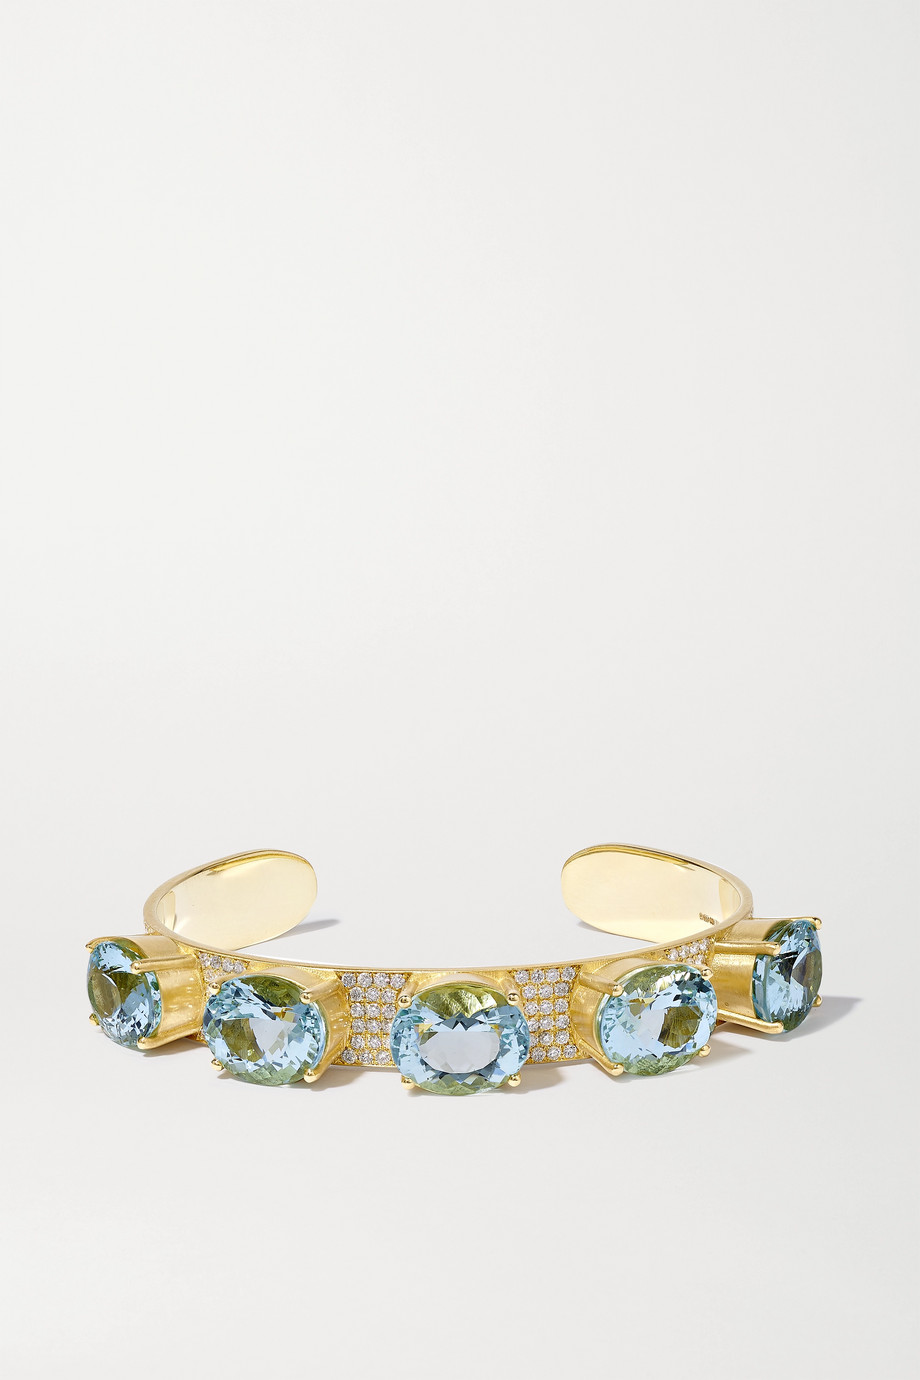 Irene Neuwirth Gemmy Gem 18-karat gold, aquamarine and diamond cuff